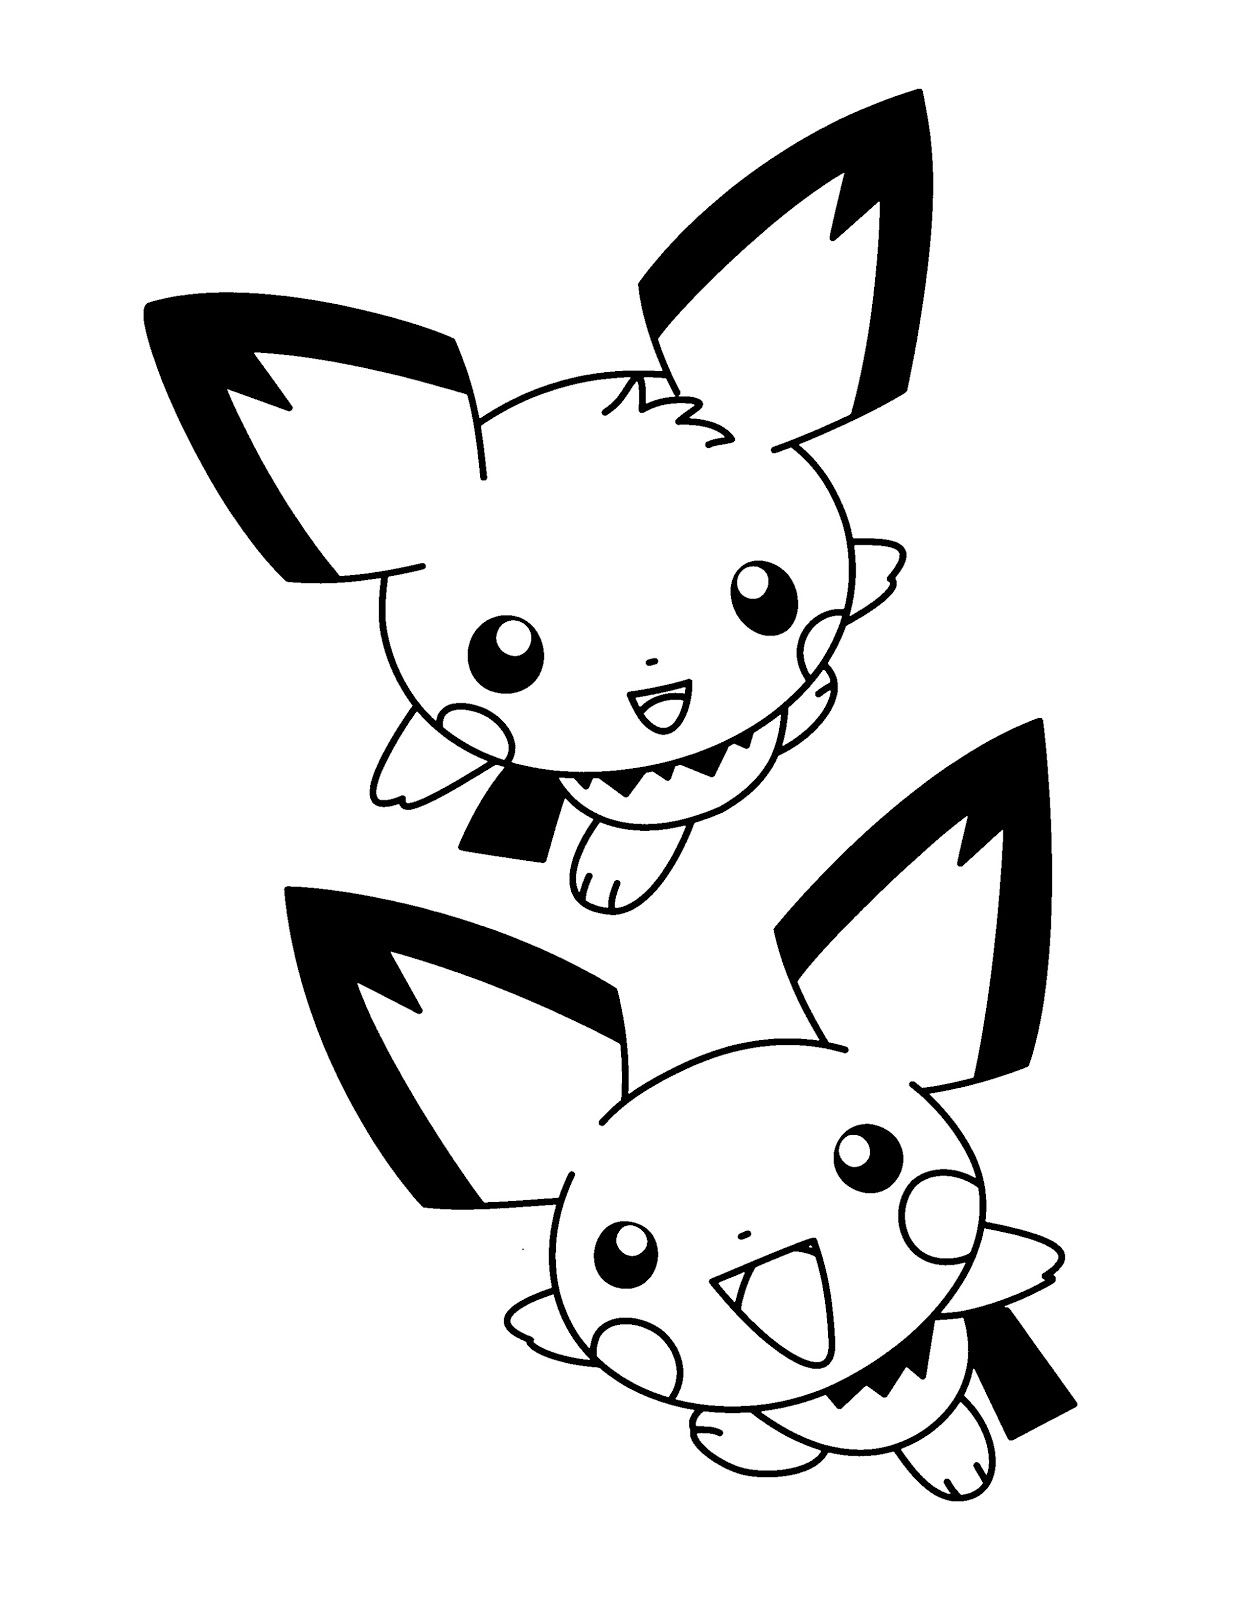 Coloring Pokemon Pichu Pictures For Kids Pokemon Coloring Pages Horse Coloring Pages Pokemon Coloring